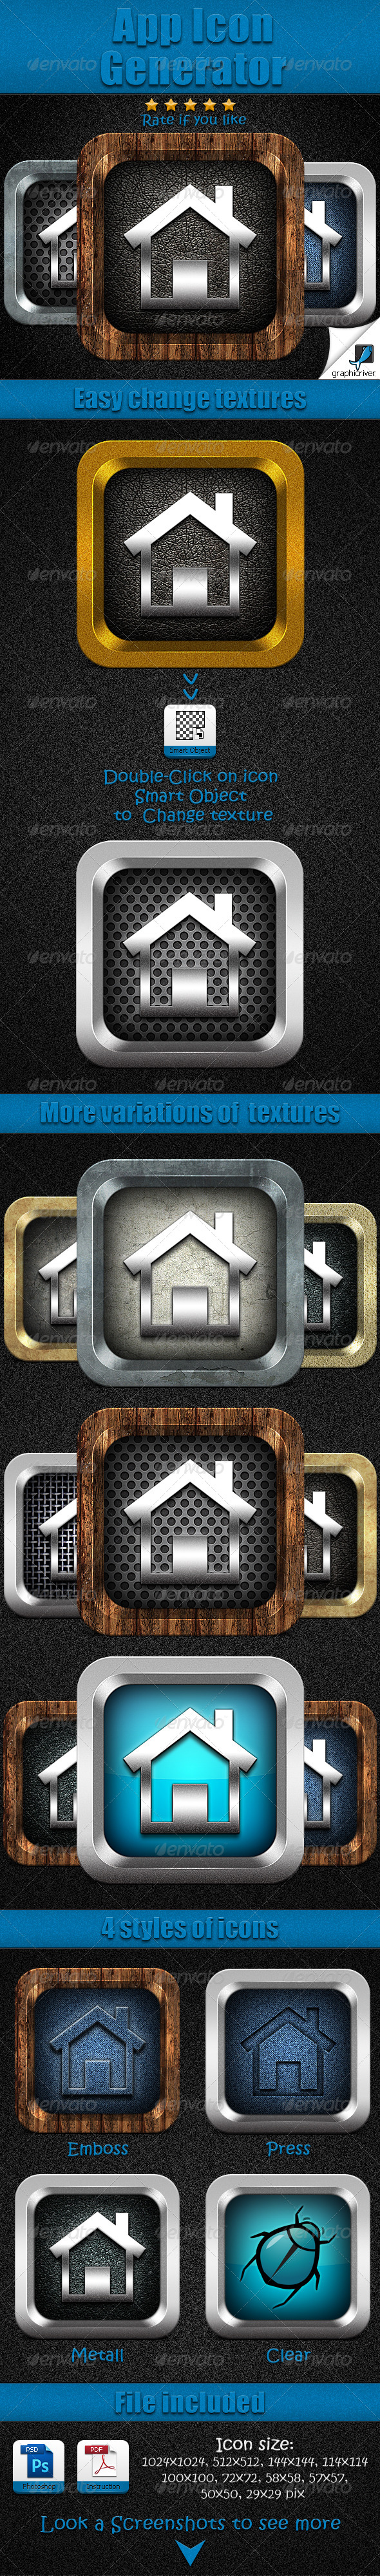 GraphicRiver App Icon Generator 6031556